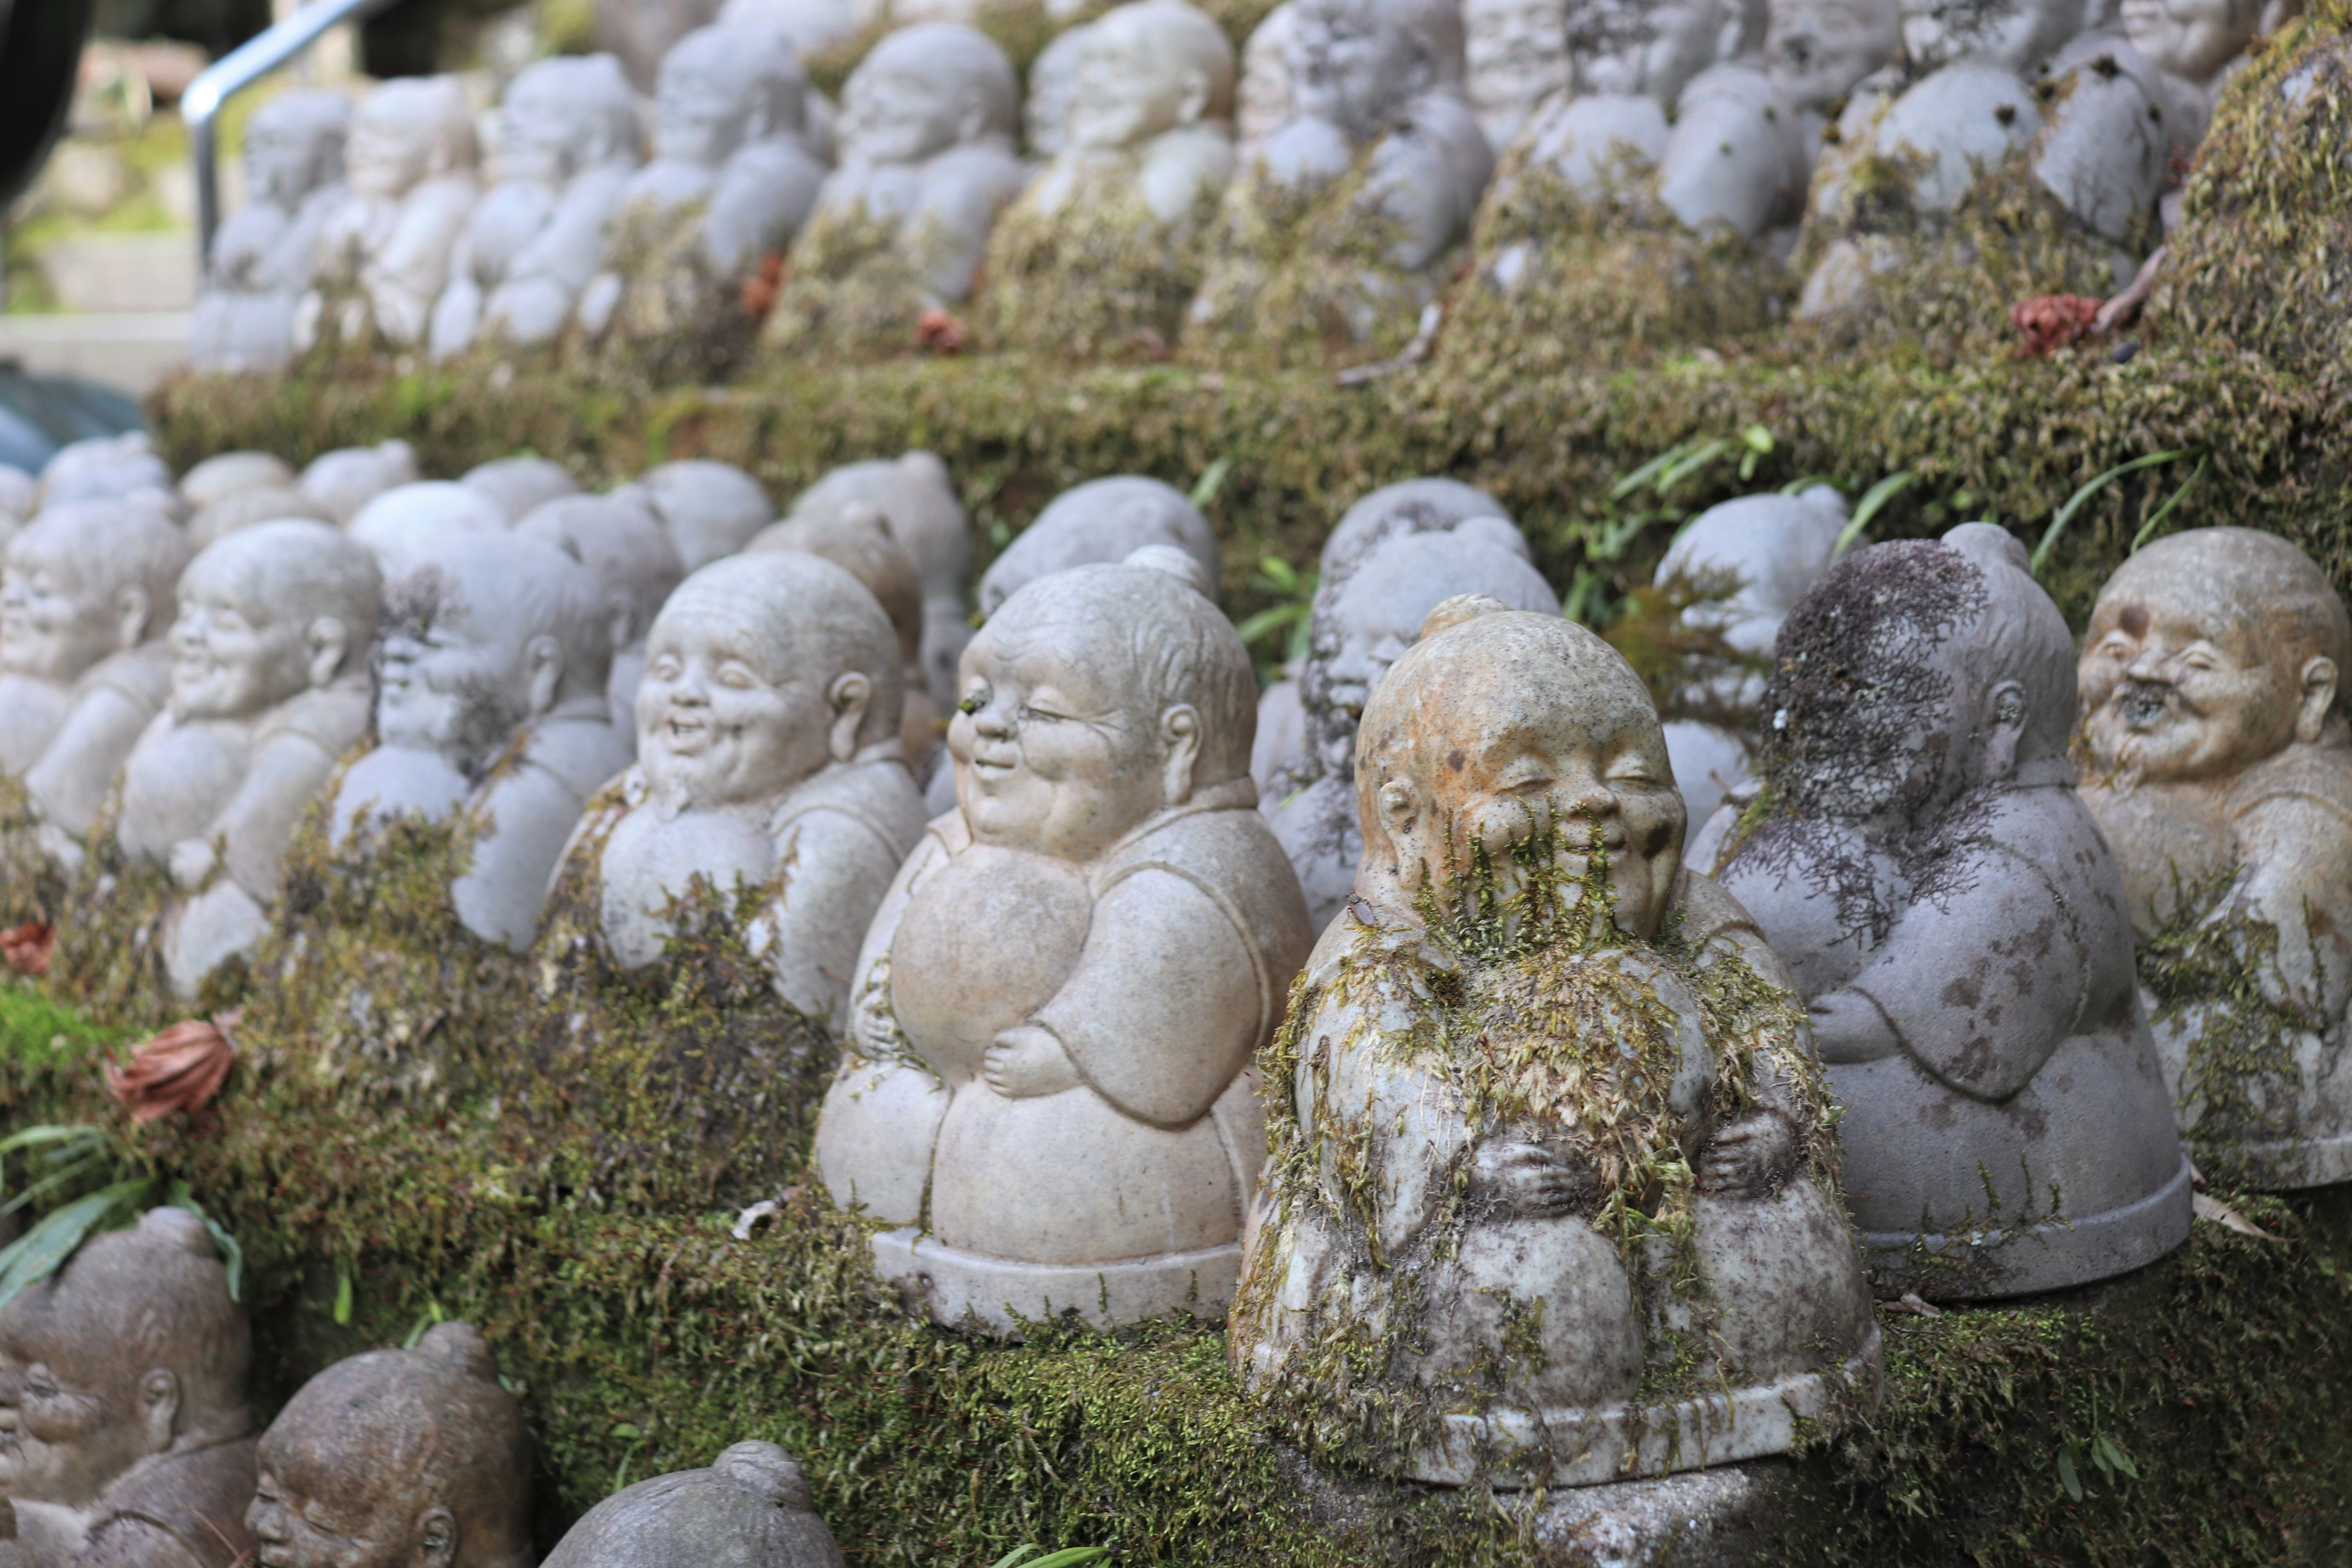 rows of small stone statues covered in moss at Imakumano Kannon-ji